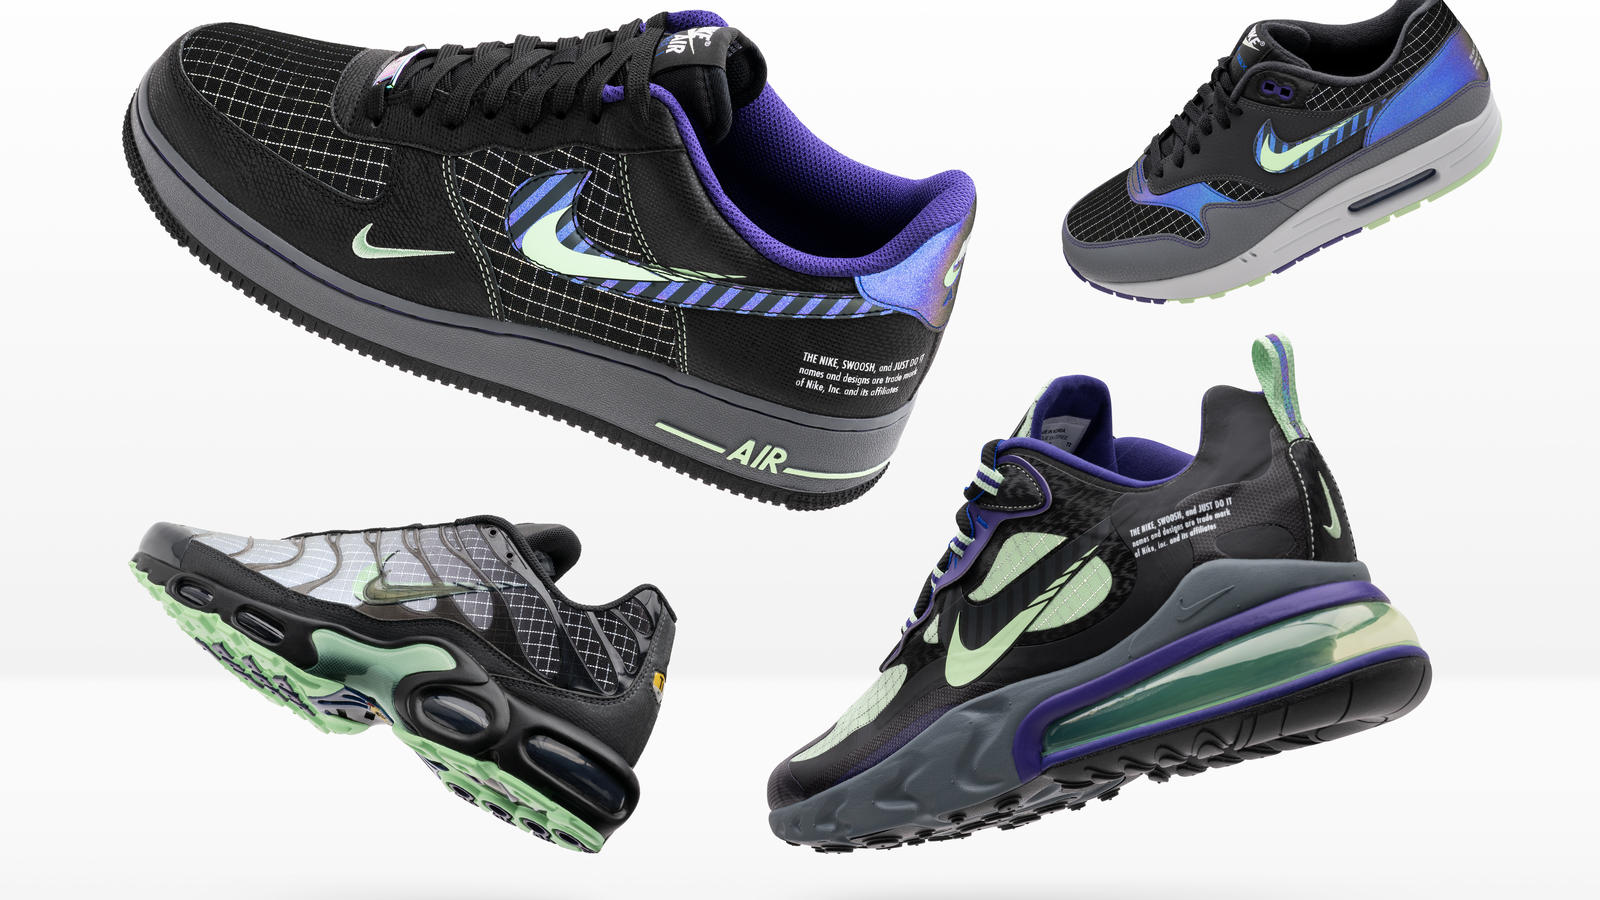 Nike and Foot Locker Inc. Evolution of Swoosh Chapter 2 Flight 89, Air Max 1, Air Max Plus, Air Max 200, Air Force 1, React 270, Air Max TN 0